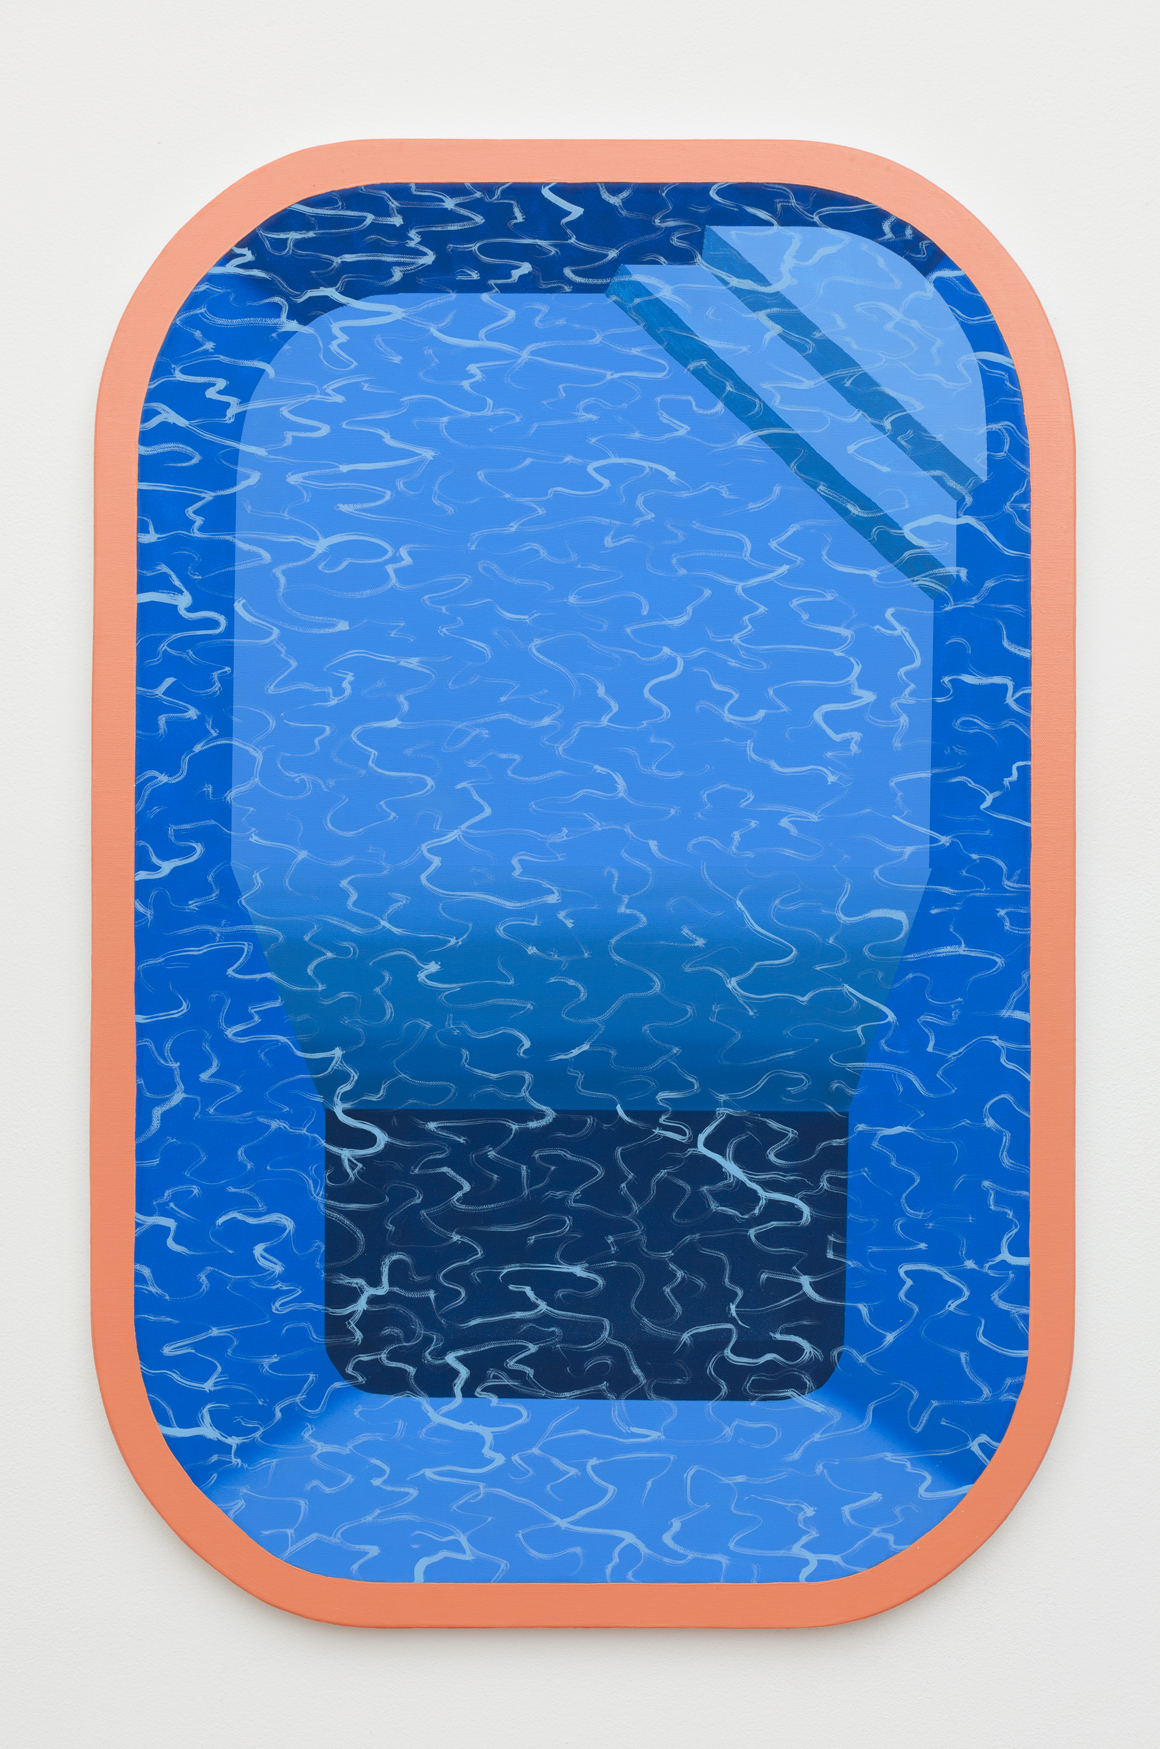 <p><em>Pool With Orange Border</em><span class='media'>Vinyl and oil on canvas</span>36 x 24 in  (91.4 x 61 cm)<br>2017<br><a class='inquire' href='mailto:info@gildargallery.com?subject=Artwork Inquiry AEDD0001&body=I am interested in finding out more about Pool With Orange Border by Adam Eddy'>Inquire</a></p>